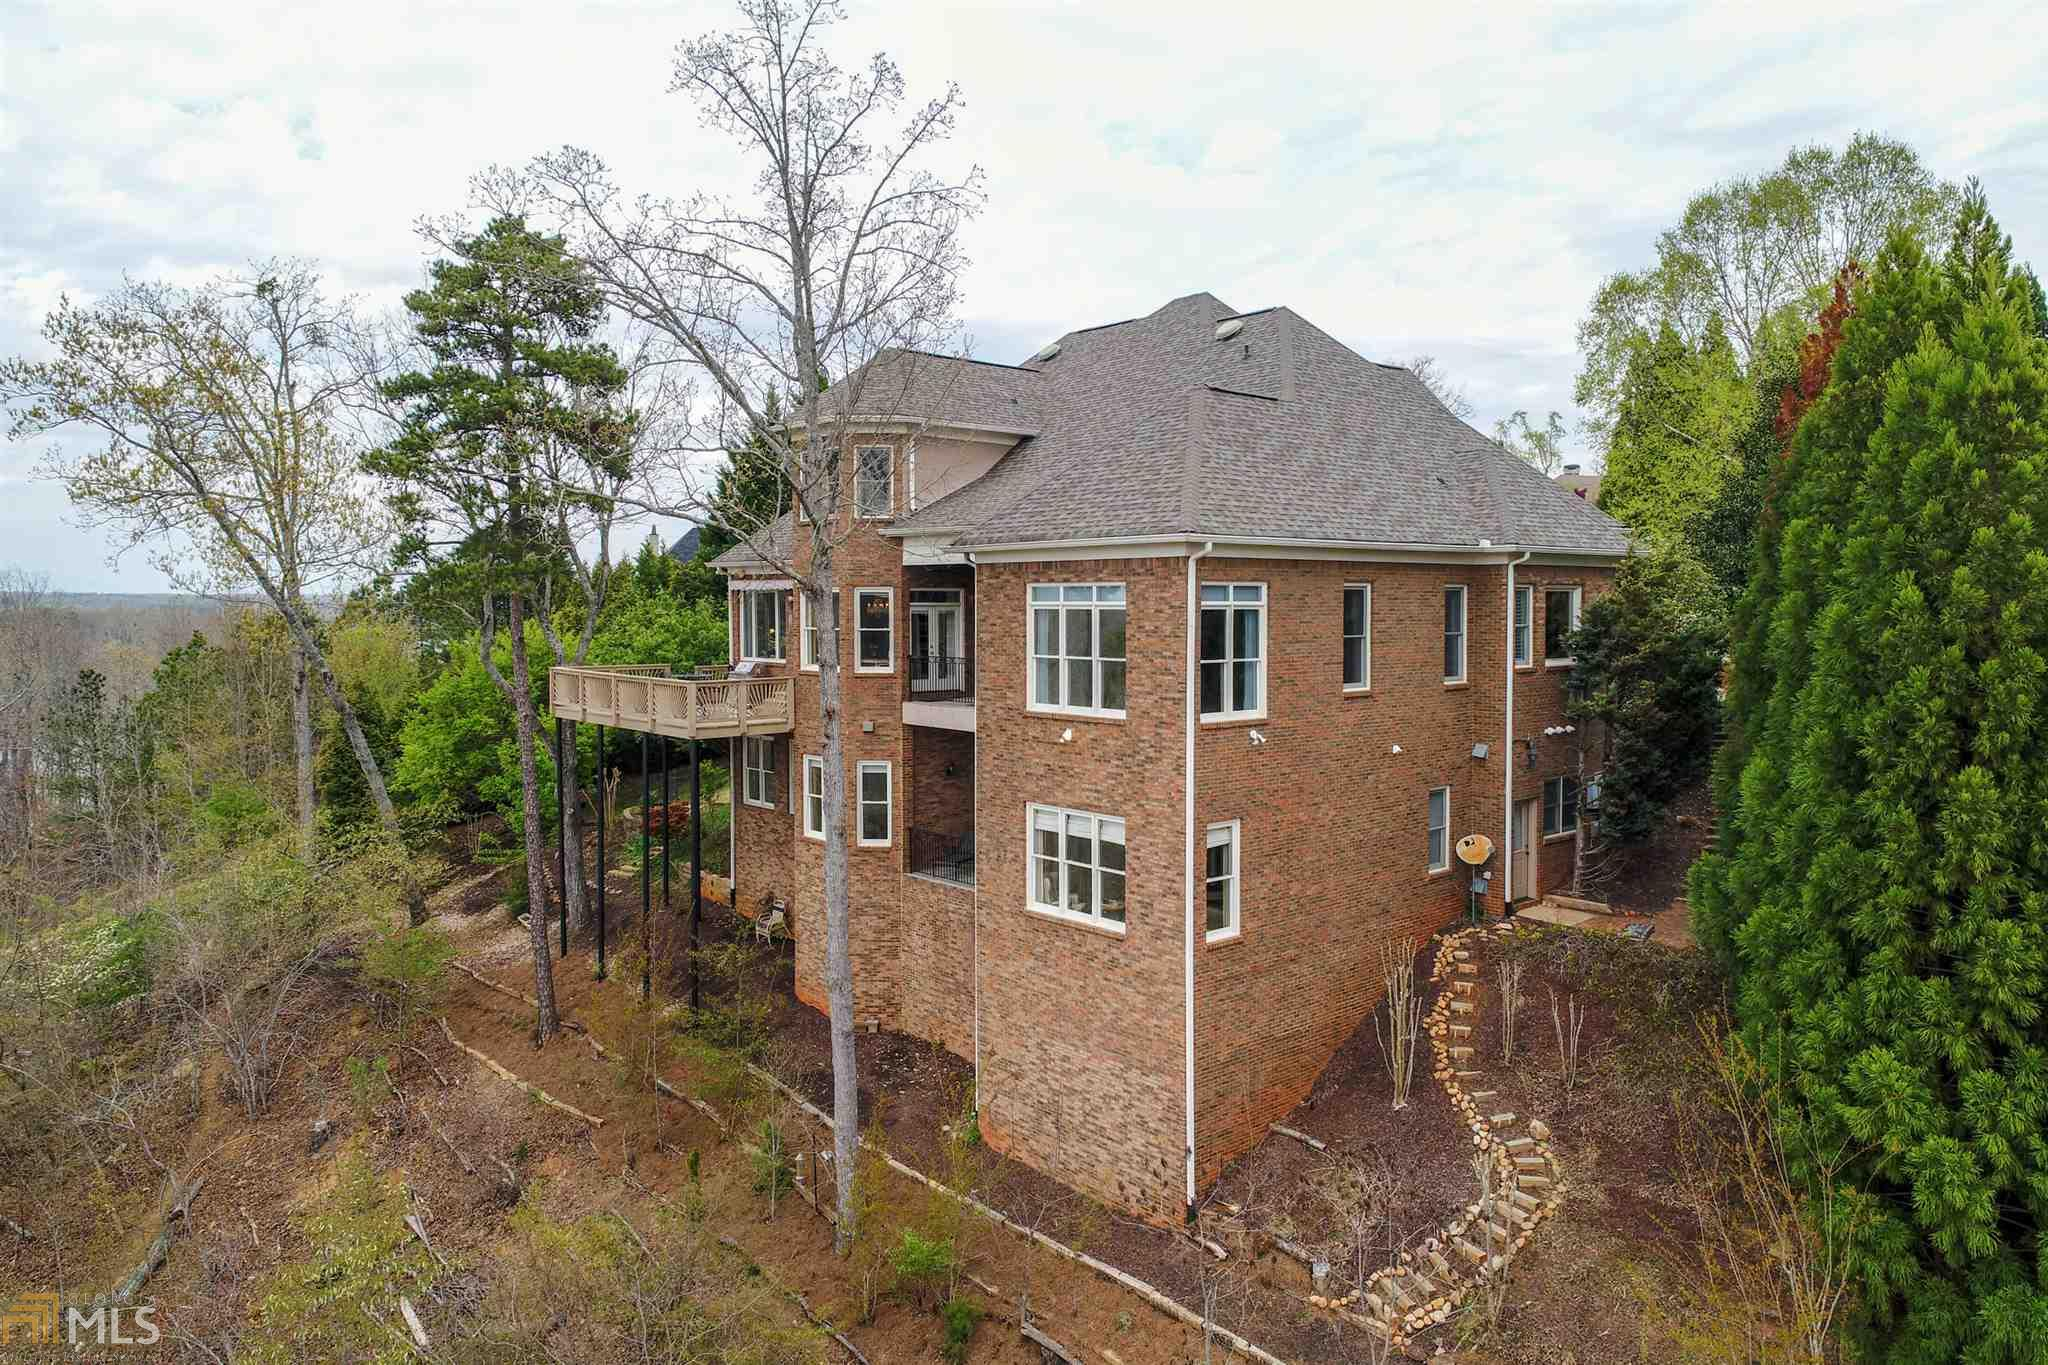 3626 Wye Cliff Way, Gainesville, GA, 30506 | Better Homes and ...